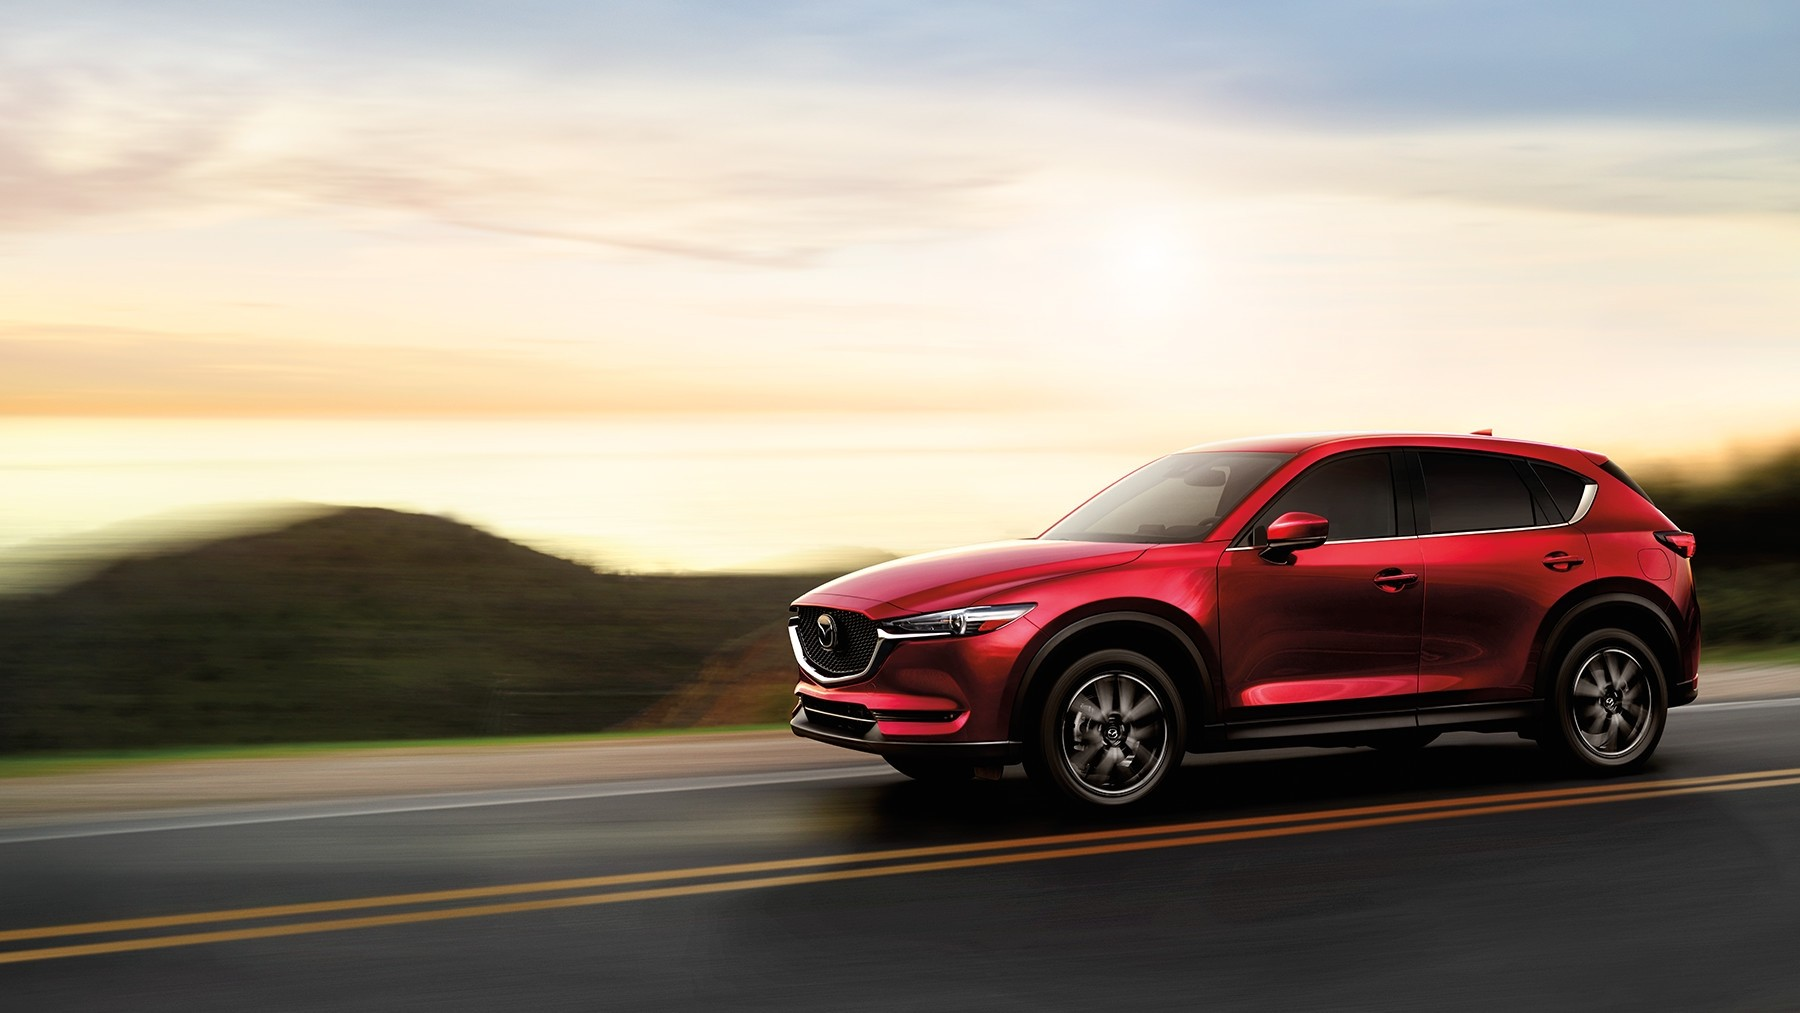 Mazda Cx 5 2017 Interior >> The Spacious And Accommodating 2017 Mazda Cx 5 Interior